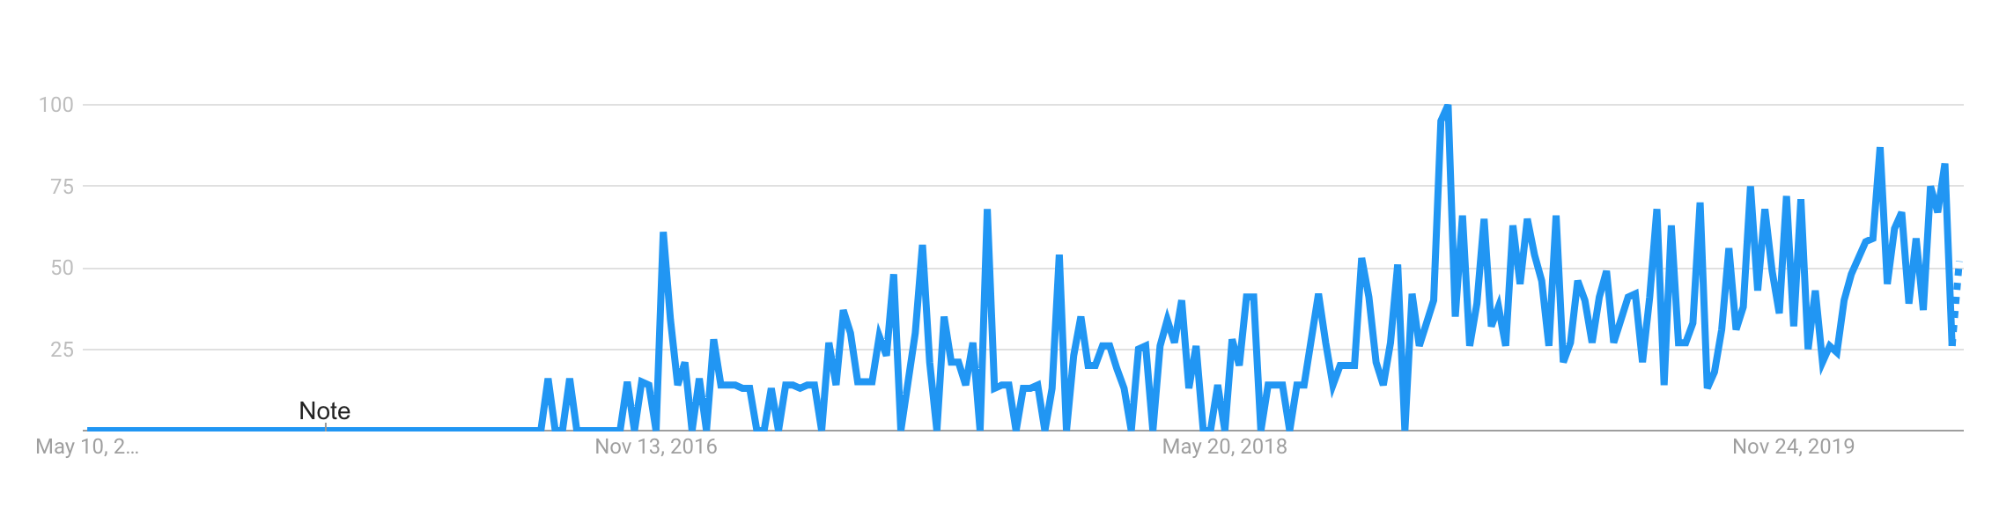 Google Trends chart showing popularity of JAMstack